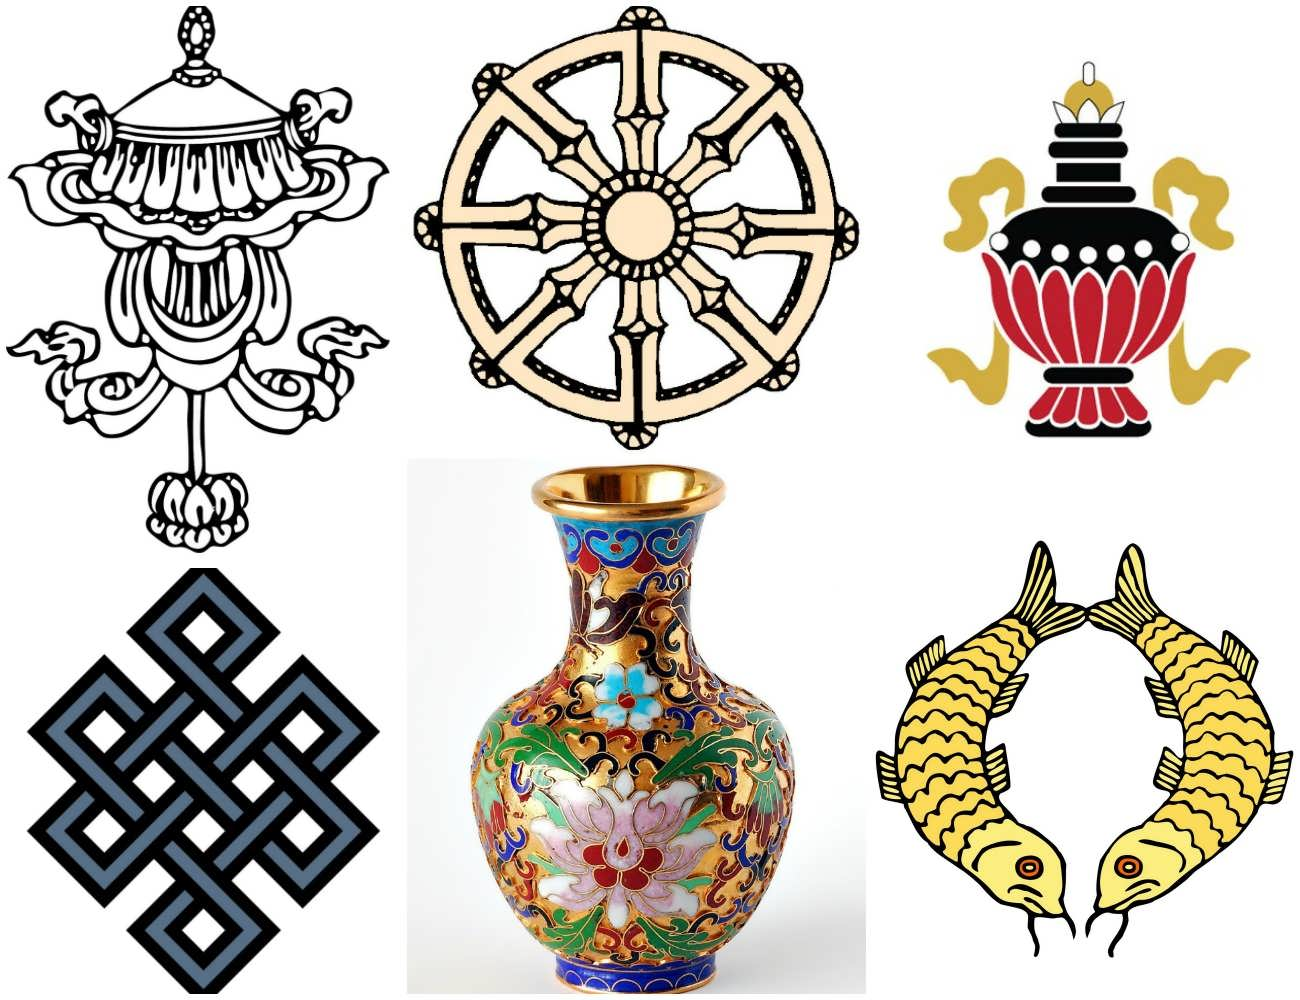 Buddhist symbols the lotus the umbrella and more buddhist symbols and their meanings biocorpaavc